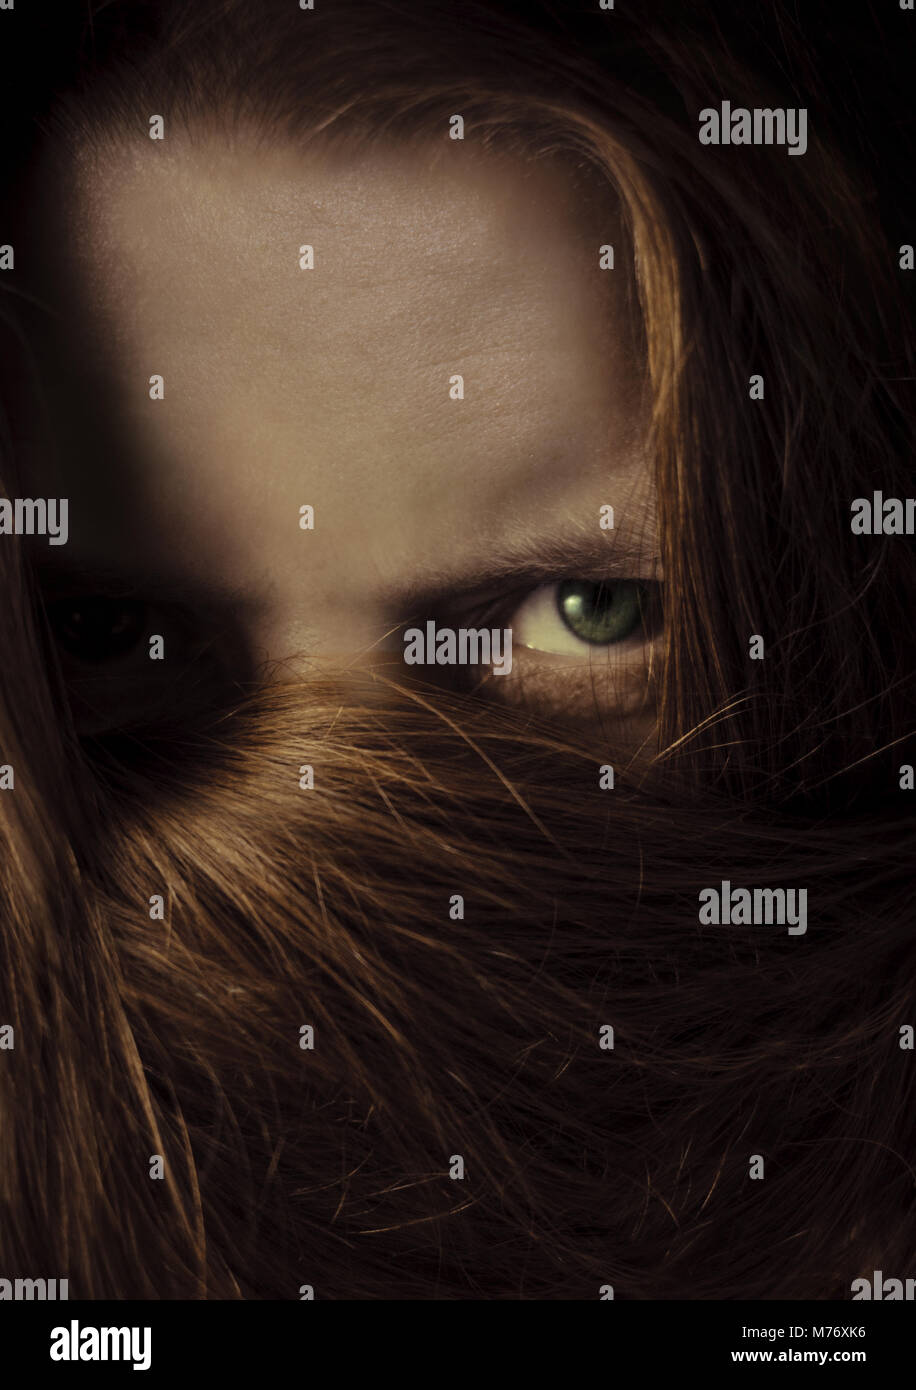 woman hiding behind long hair with only green eye visible - Stock Image